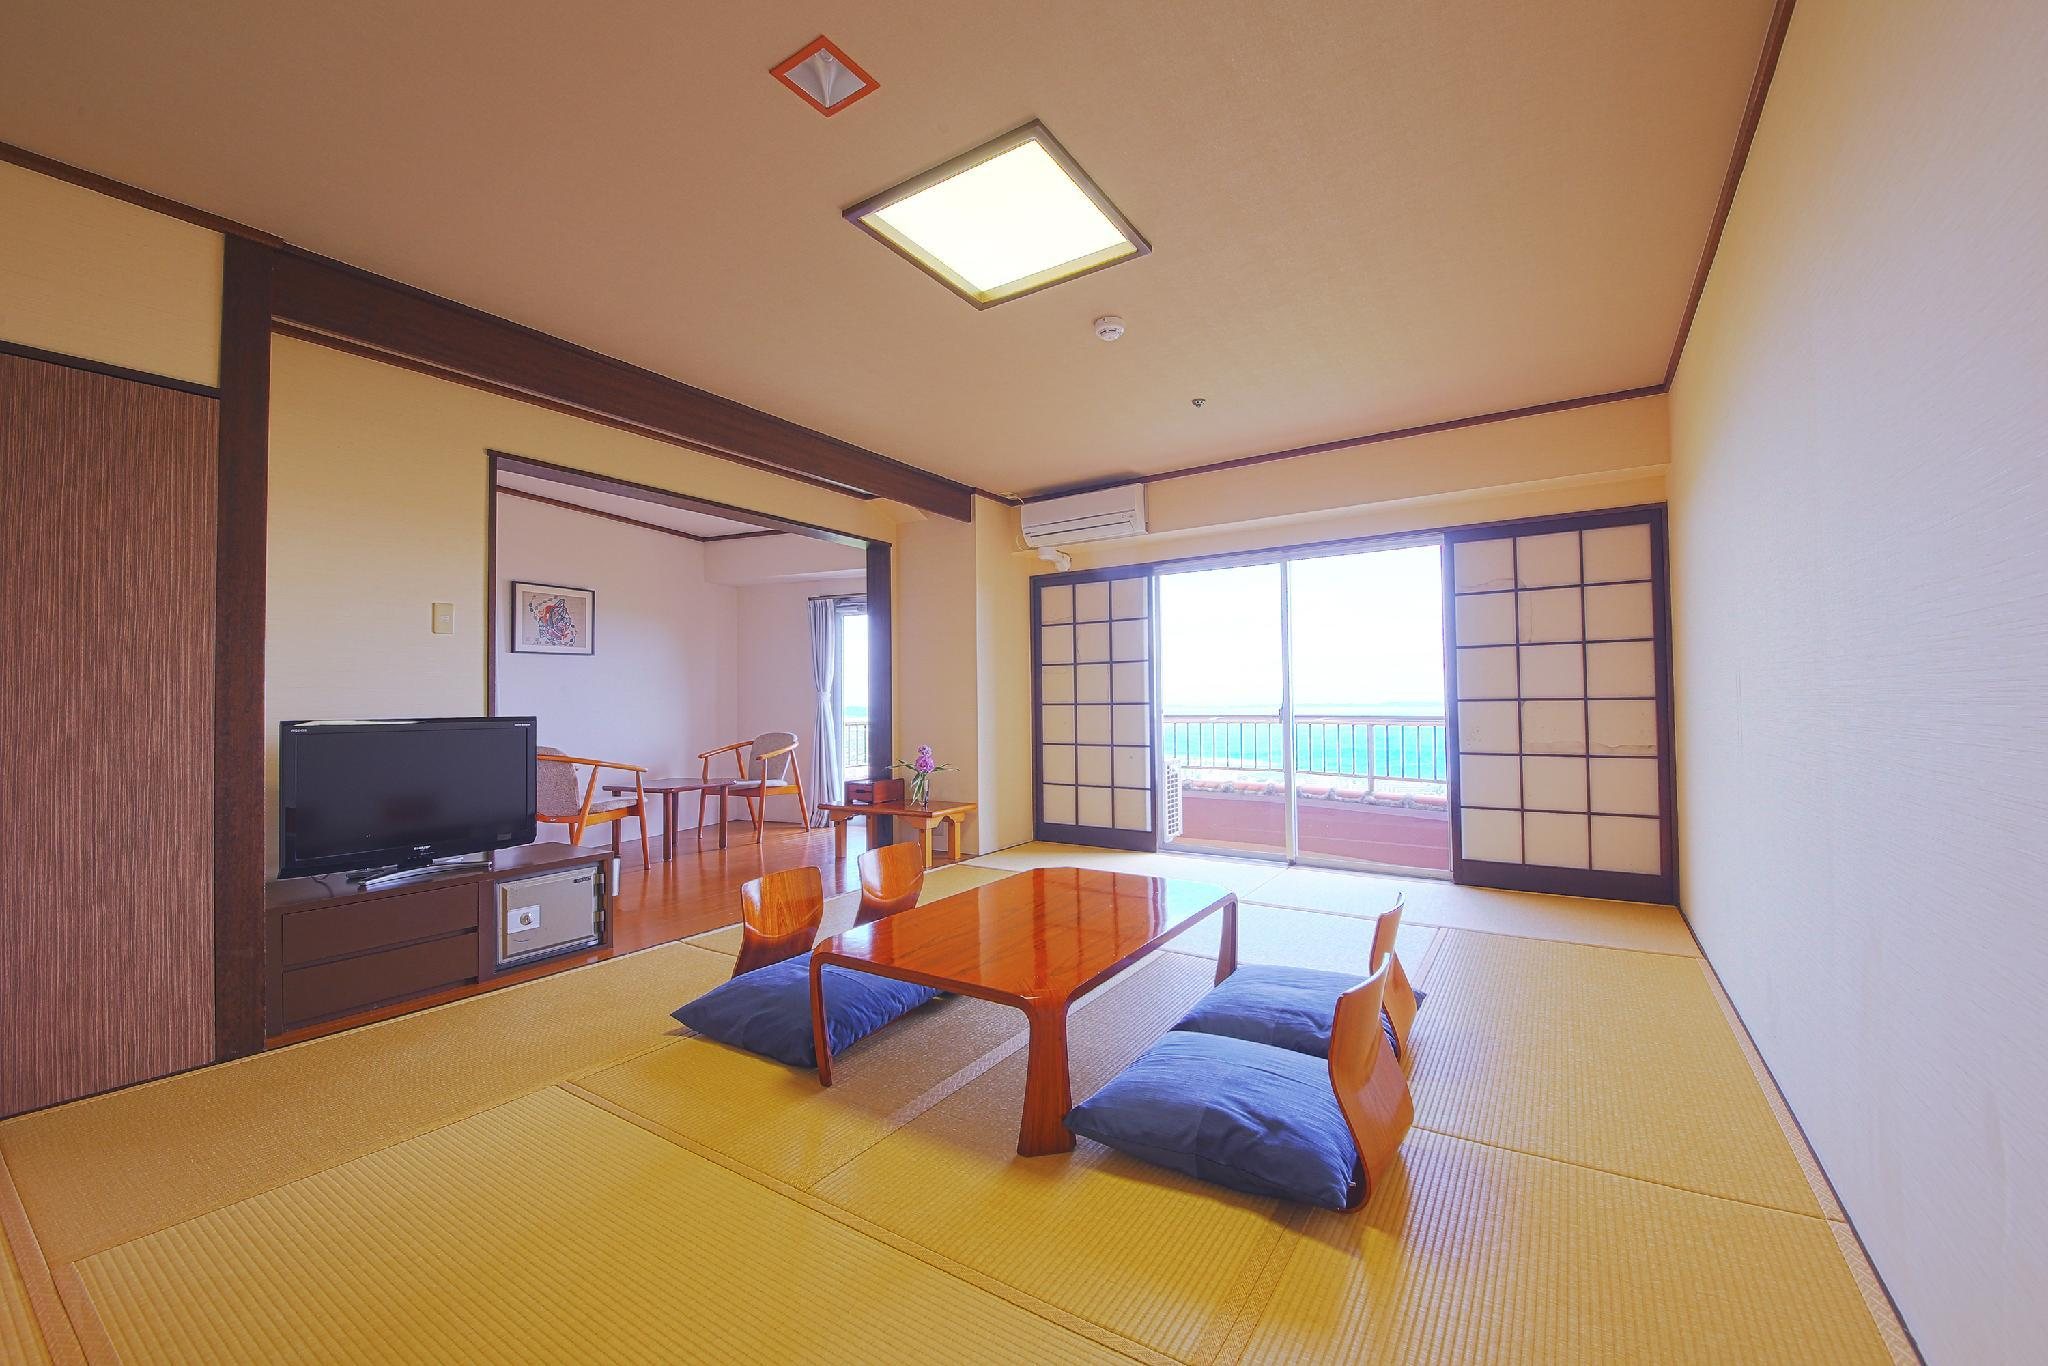 豪華日式客房 - 有專用衛浴/禁菸 (Deluxe Japanese Style Room with Private Bathroom - Non-Smoking)